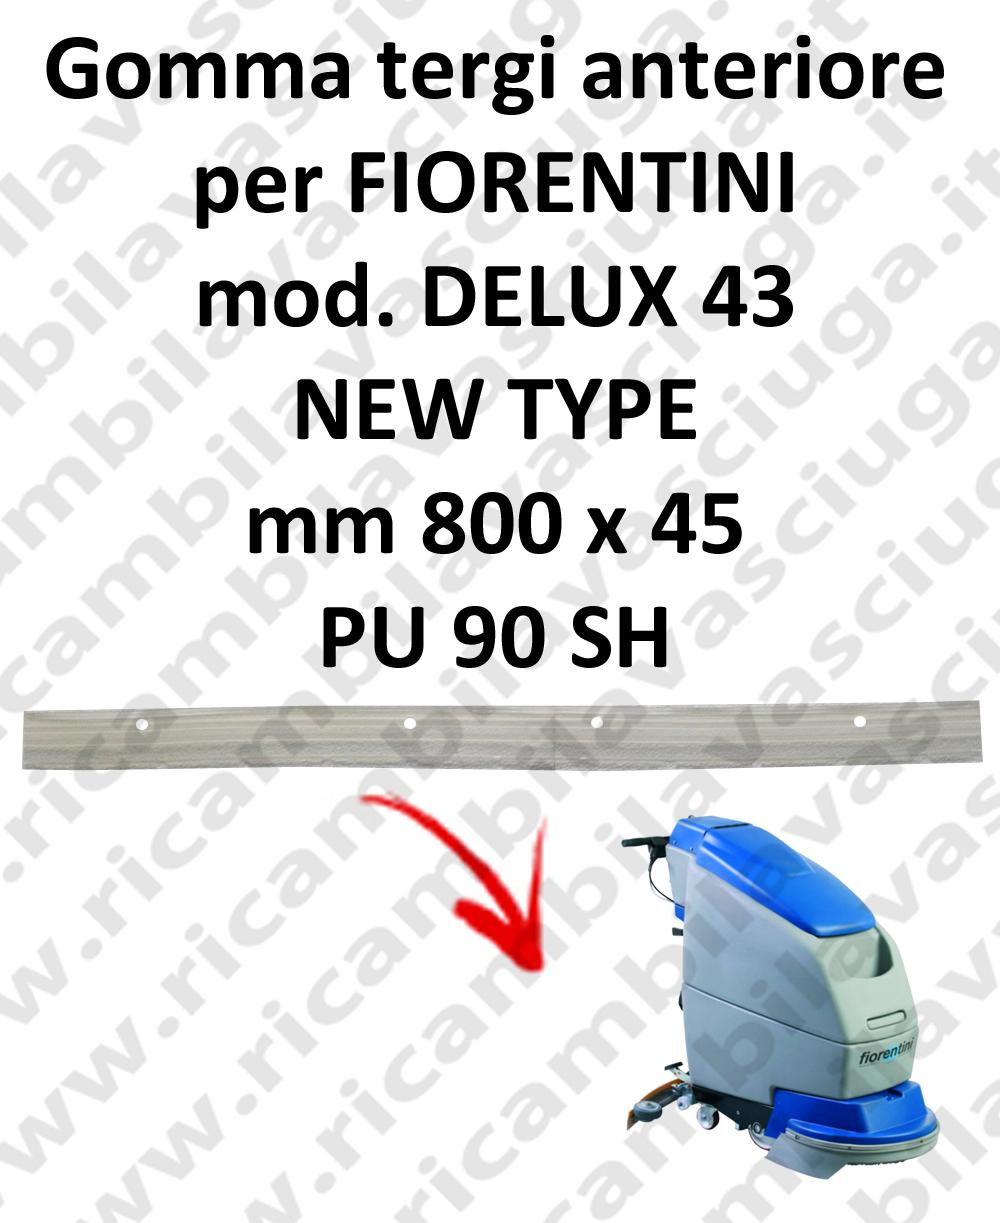 DELUX 43 new type Front Squeegee rubberfor FIORENTINI squeegee